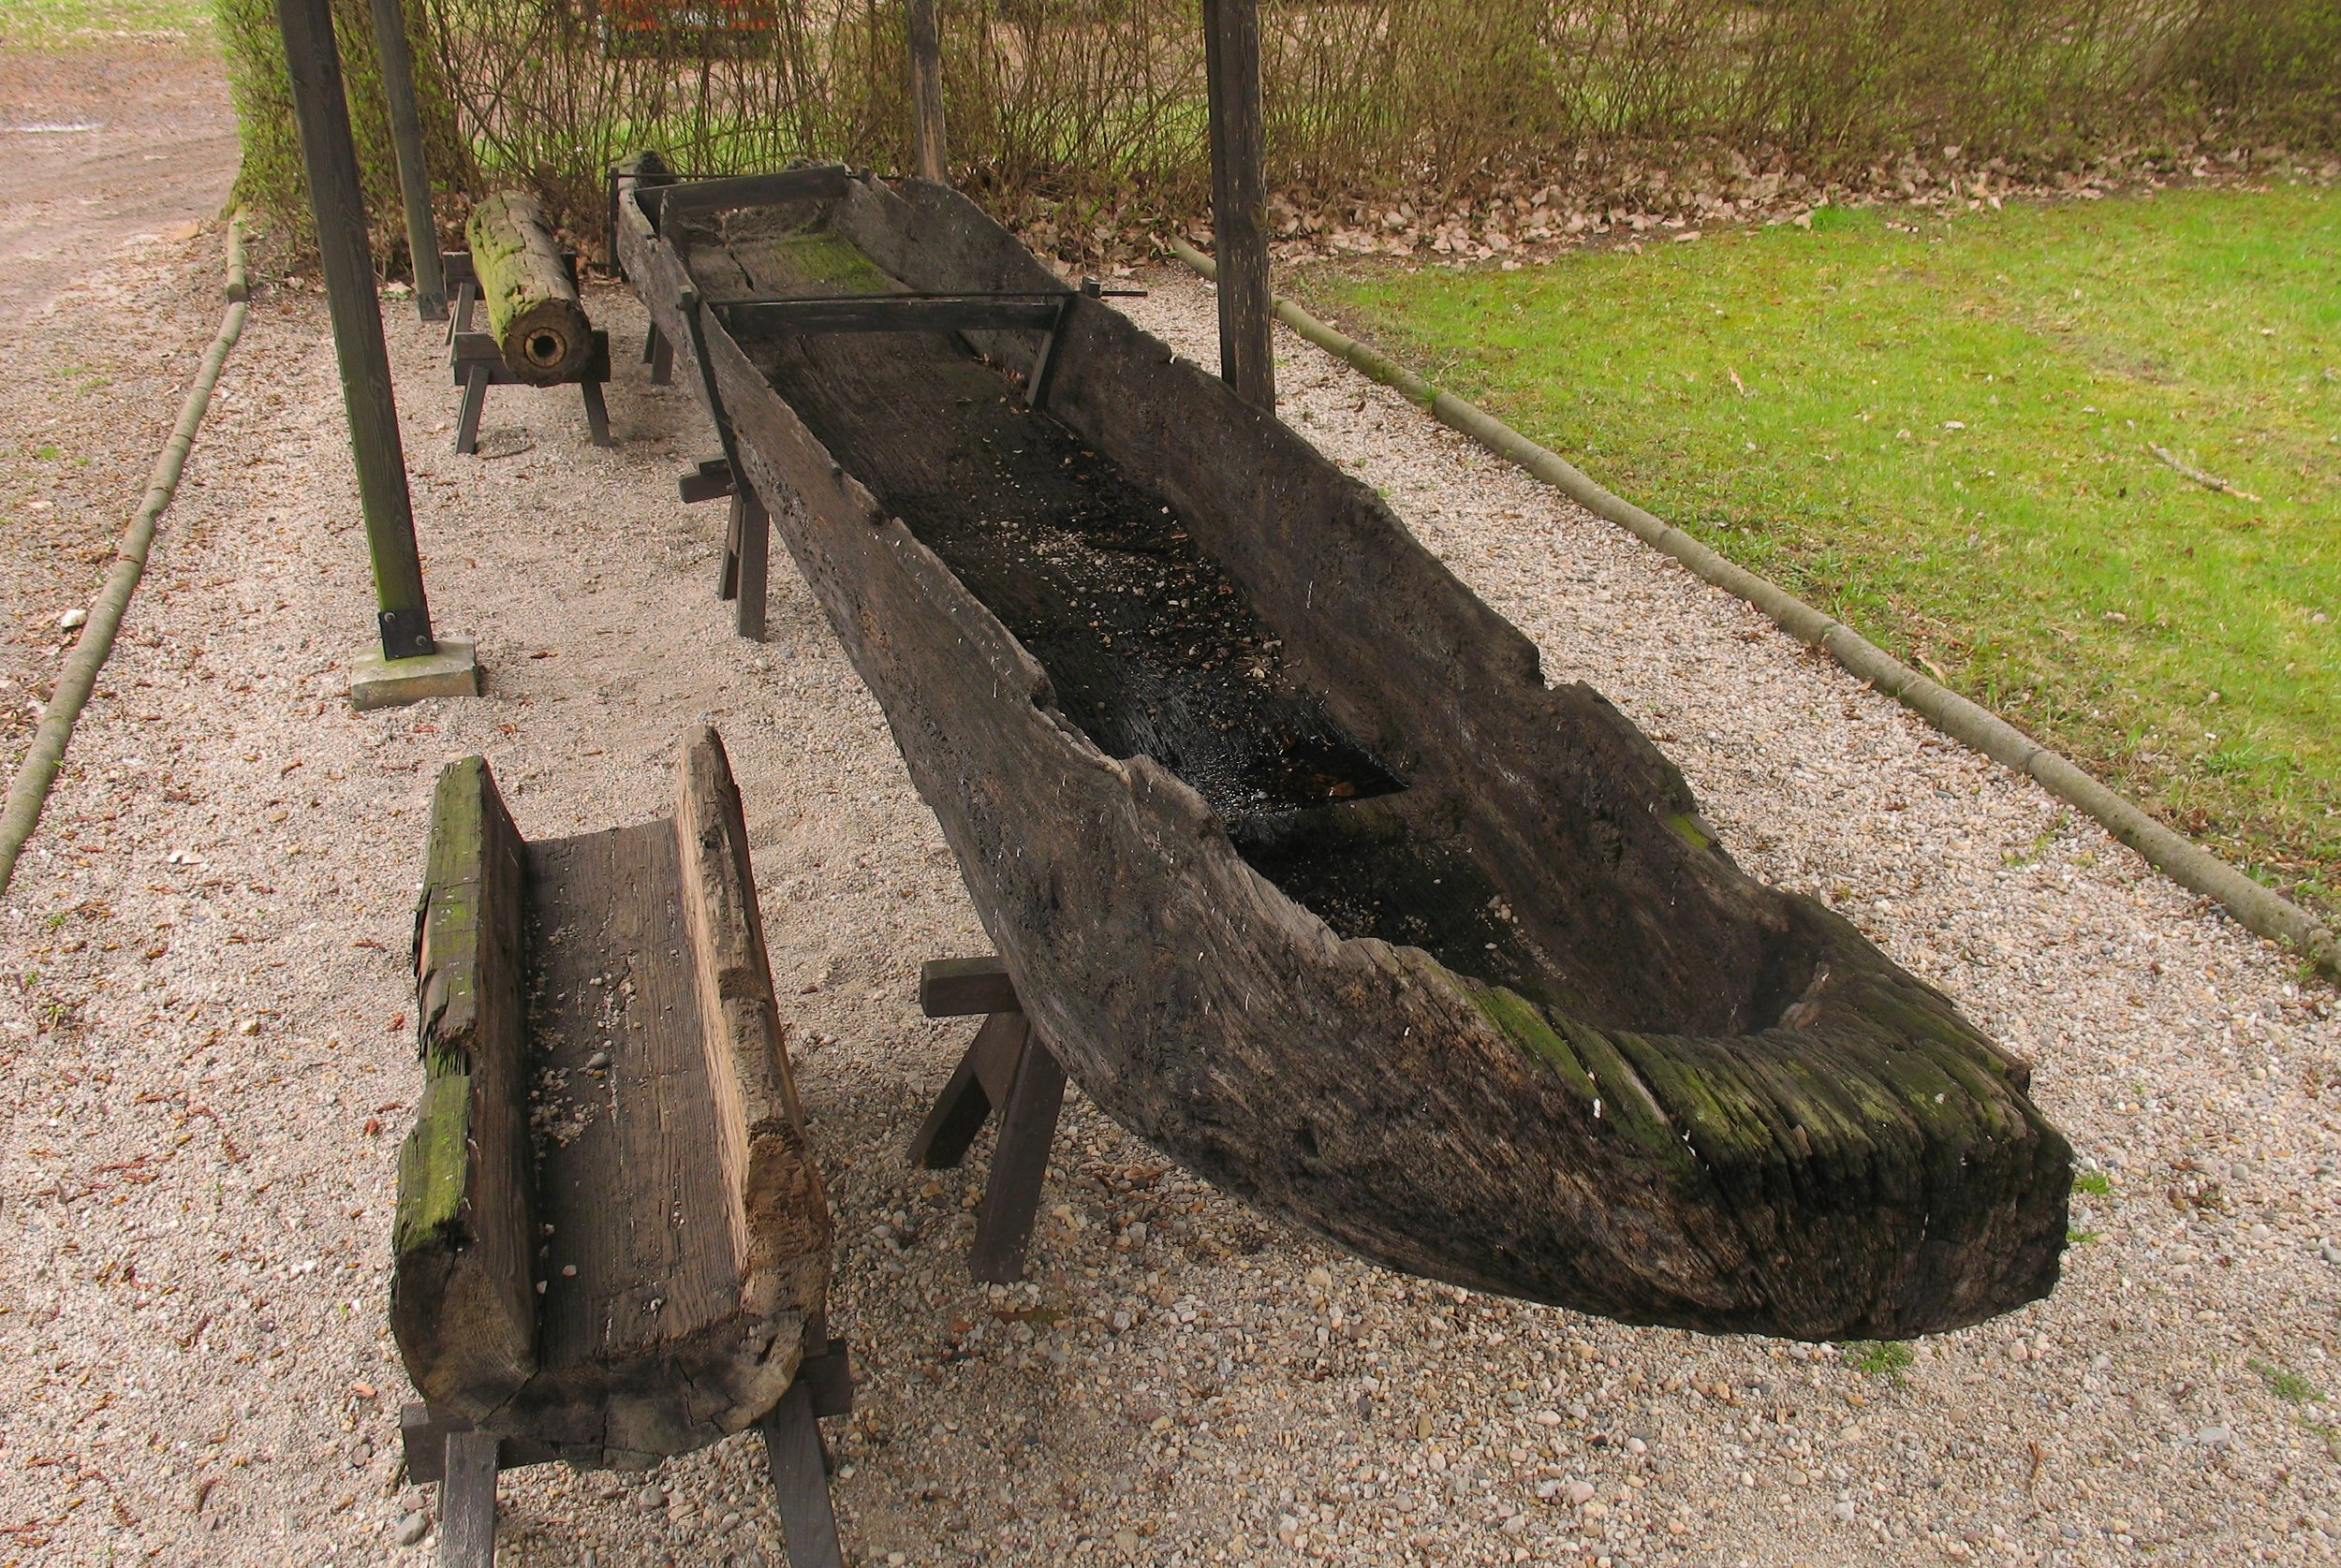 Monoxyla. A 10th century monoxyla boat found in the Oder river in Poland. It is currently in the Świdnica museum near Zielona Góra, Poland. ©Mohylek, via Wikimedia Commons